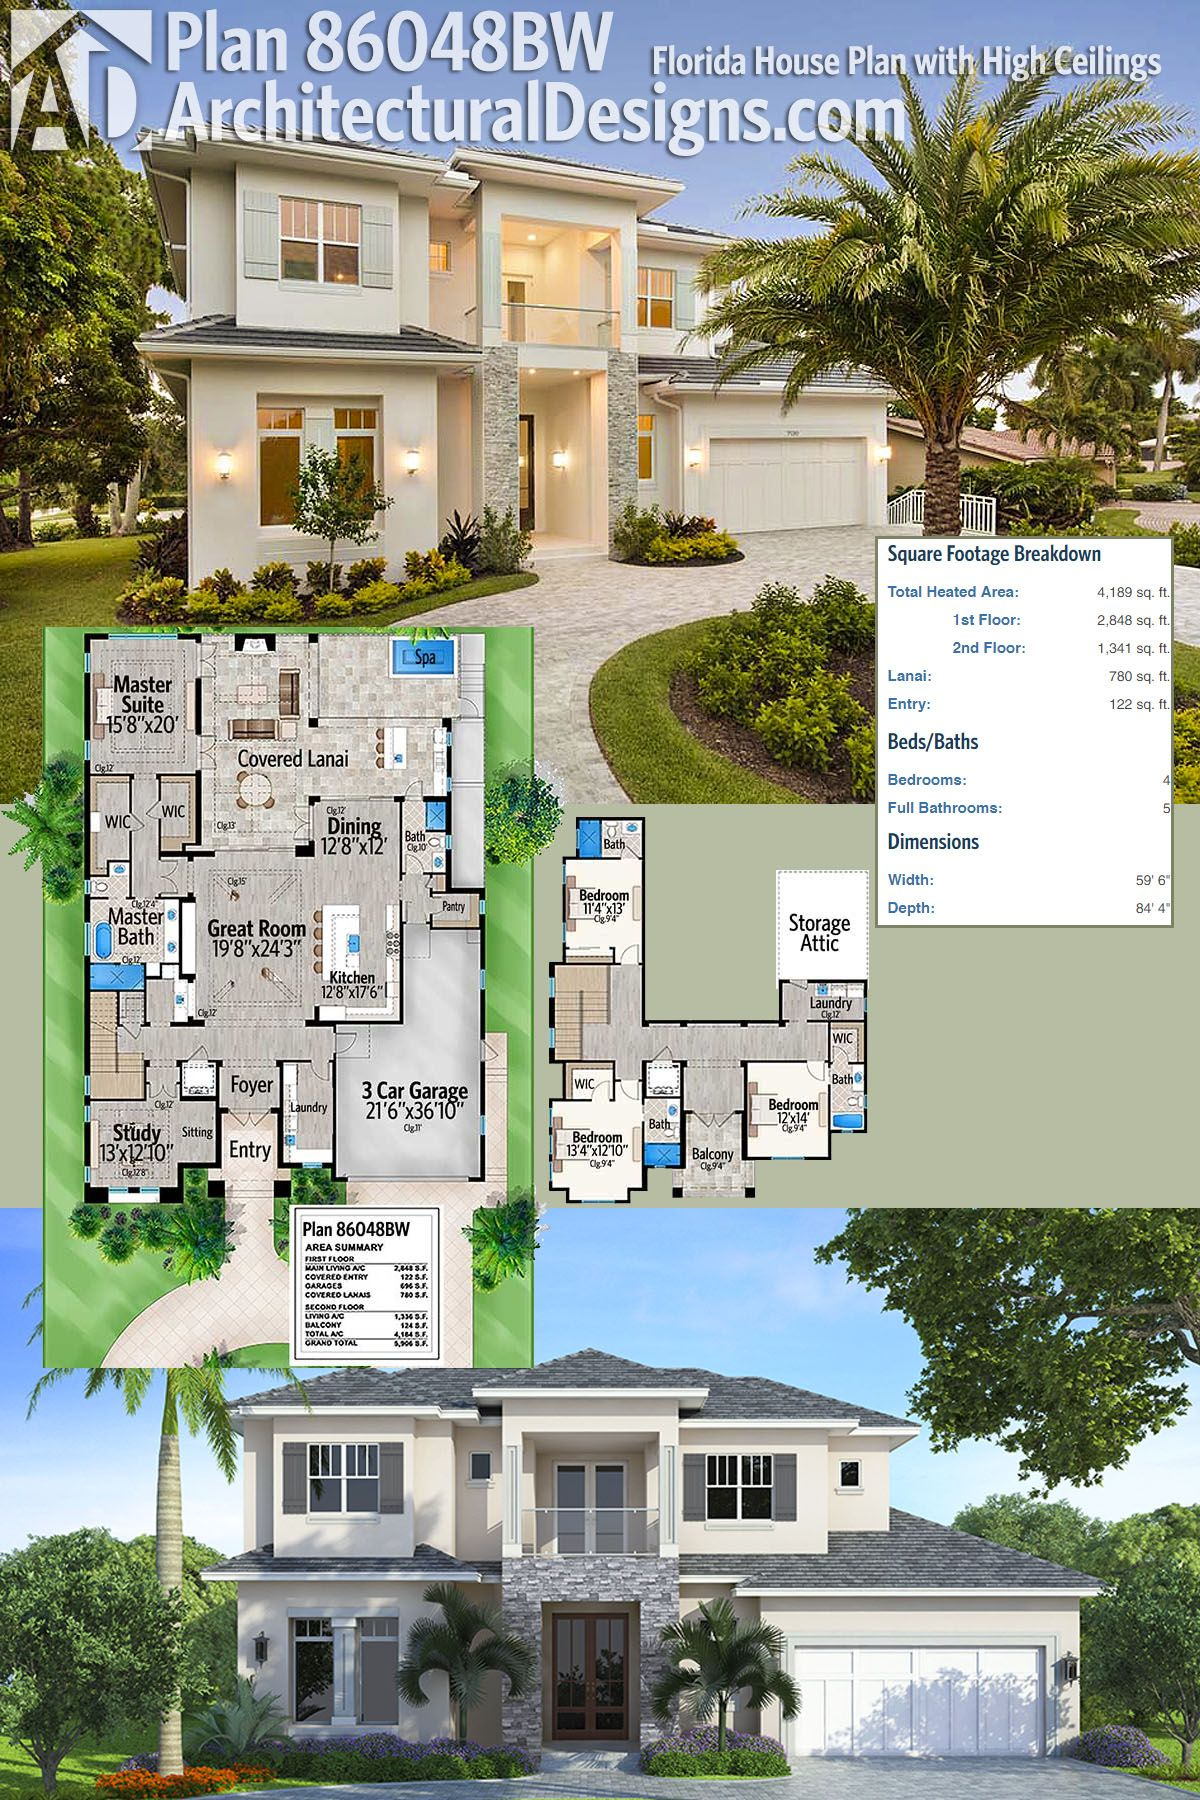 Plan BW Florida House Plan with High Ceilings